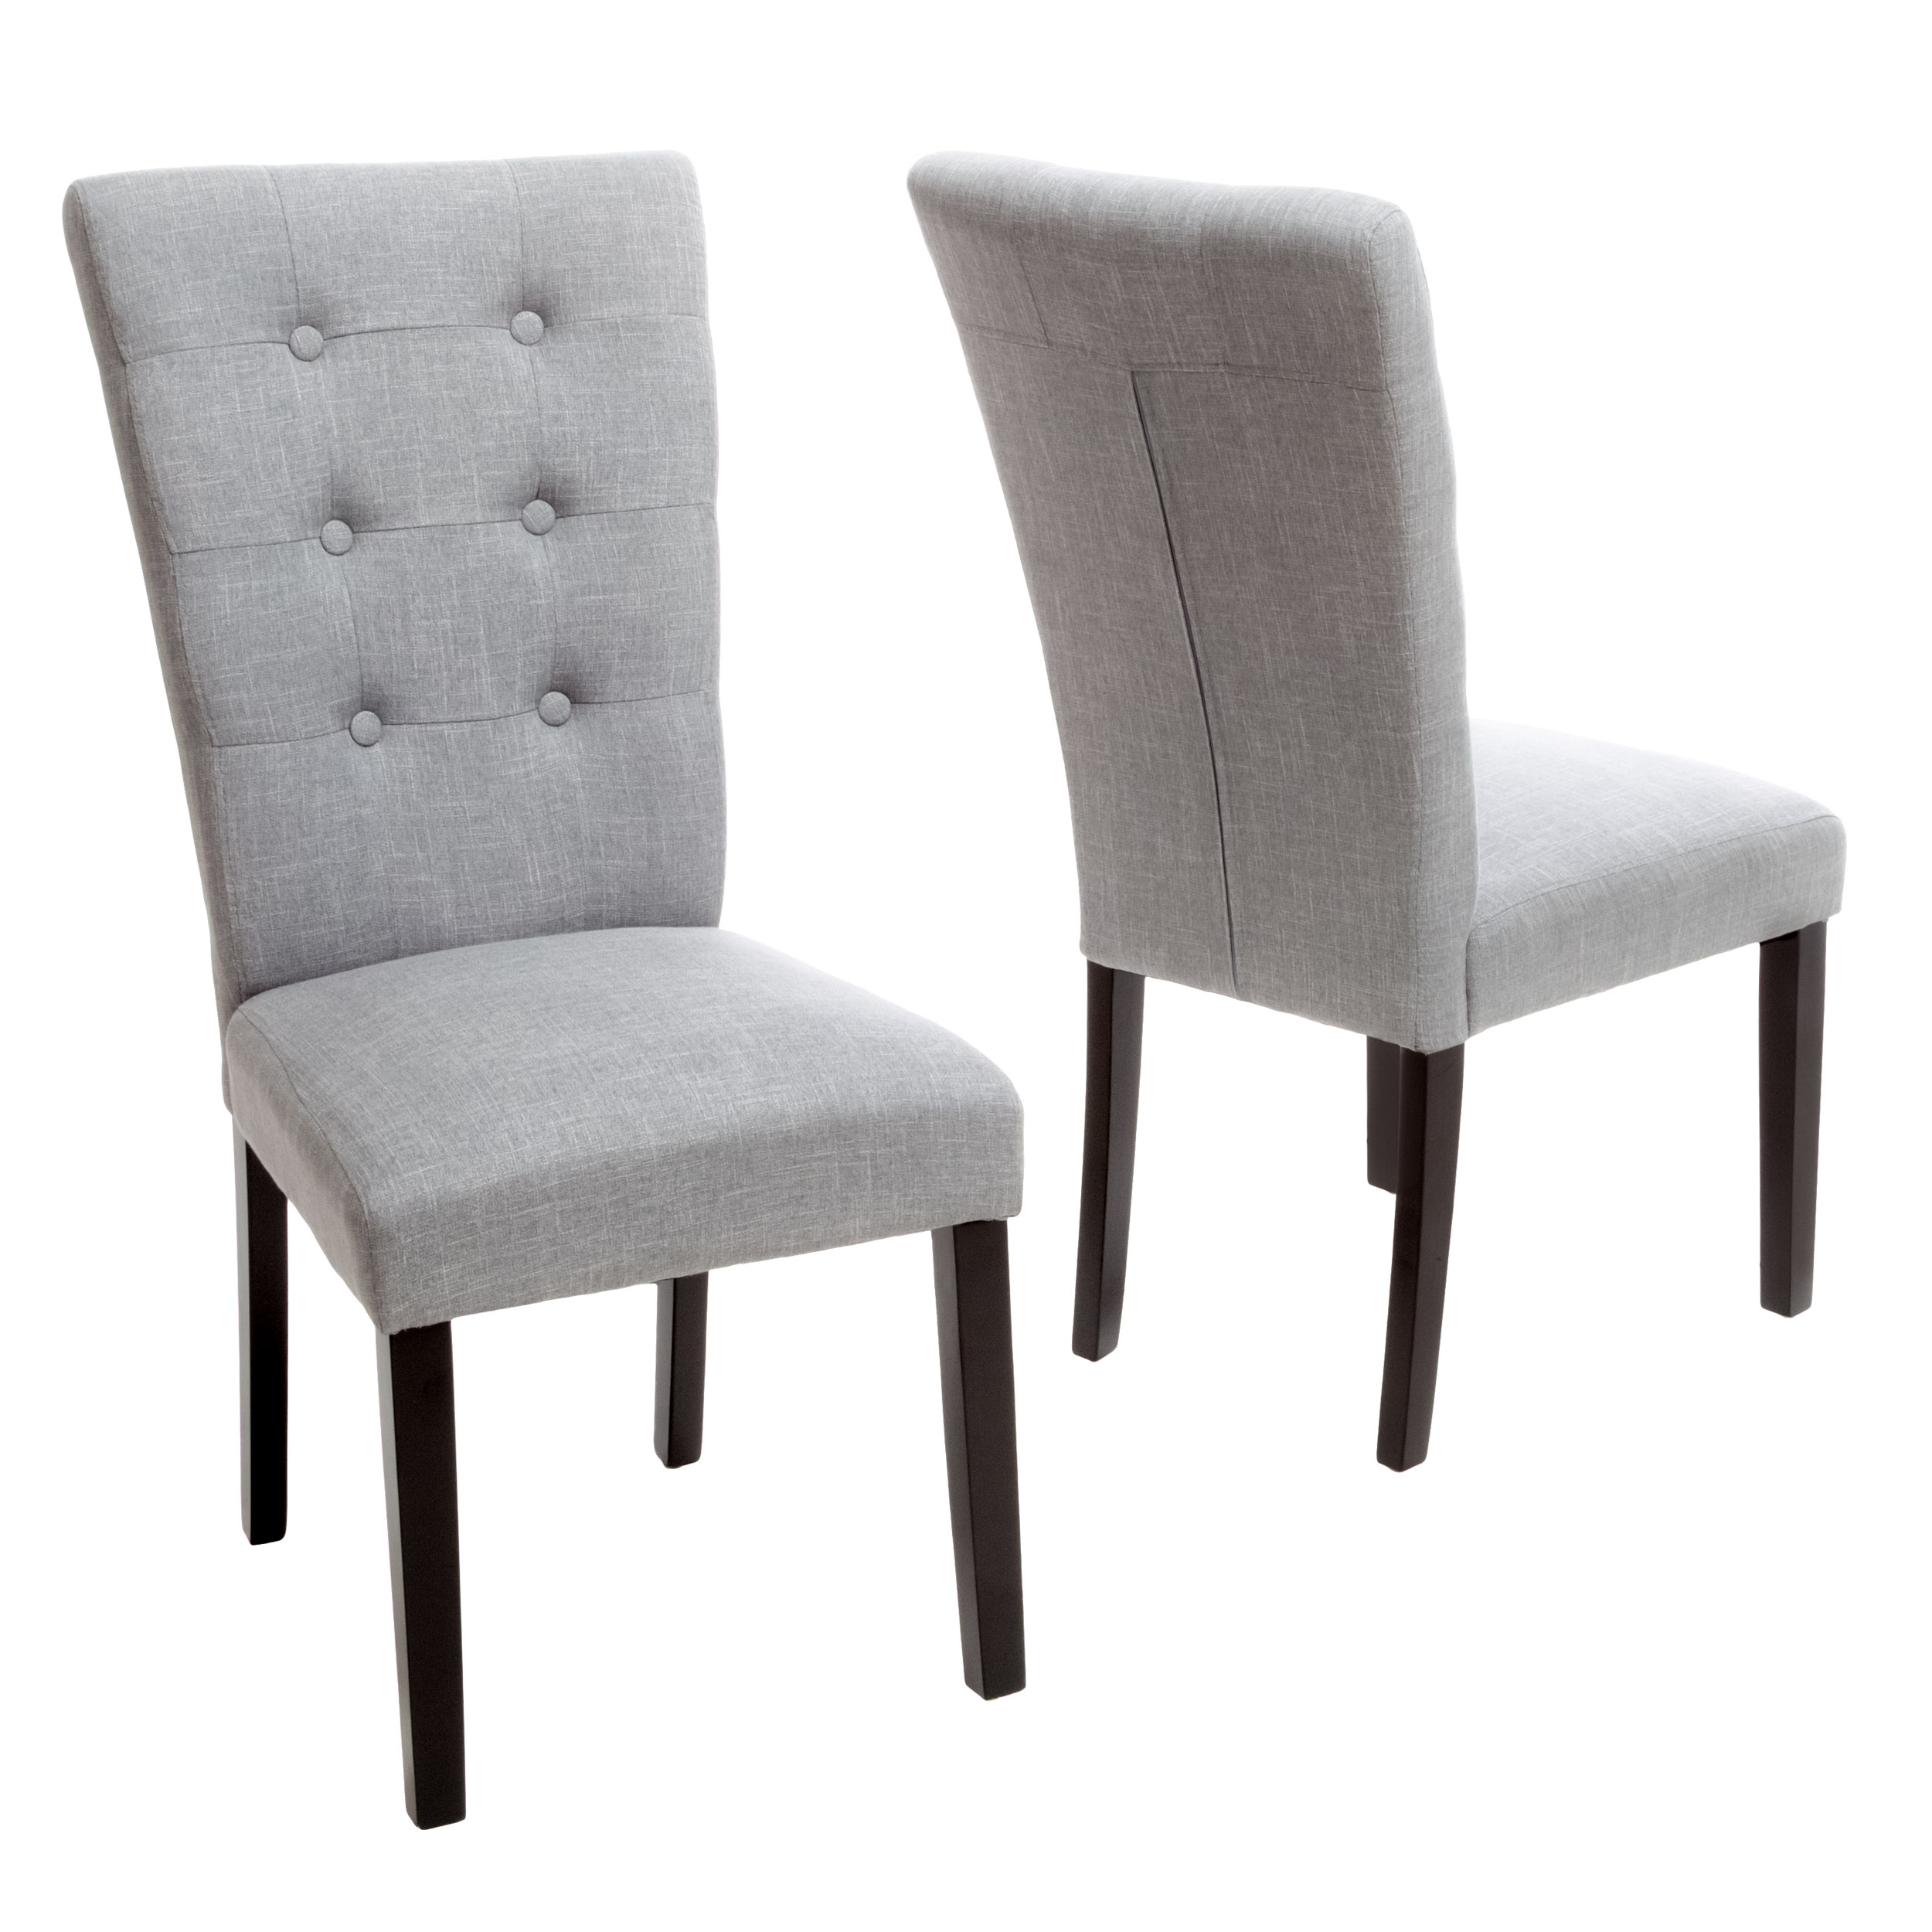 Noble House Jolie Grey Fabric Dining Chair, Set of 2